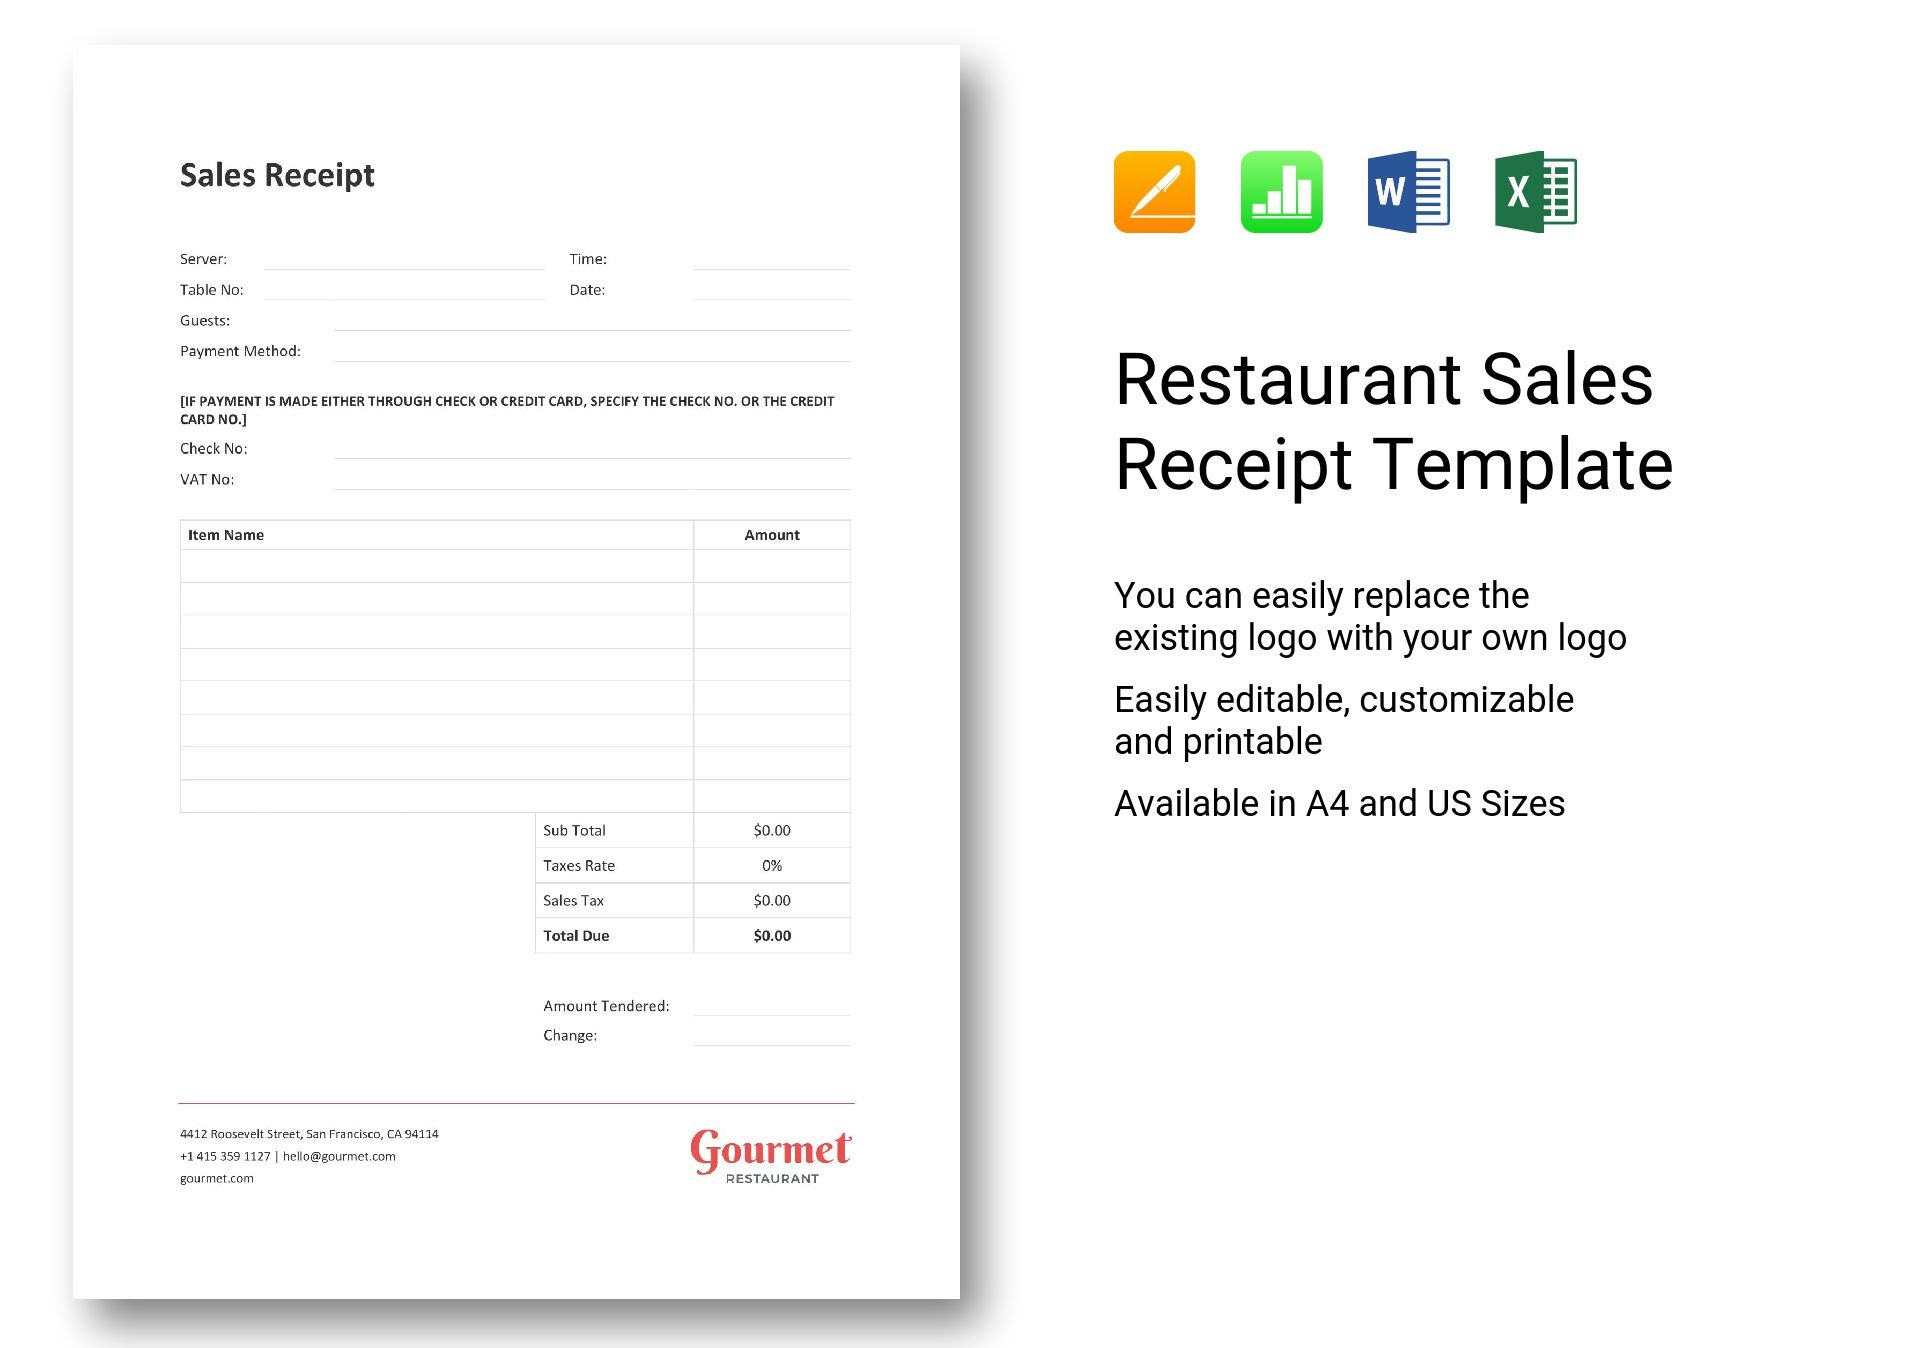 Restaurant Sales Receipt